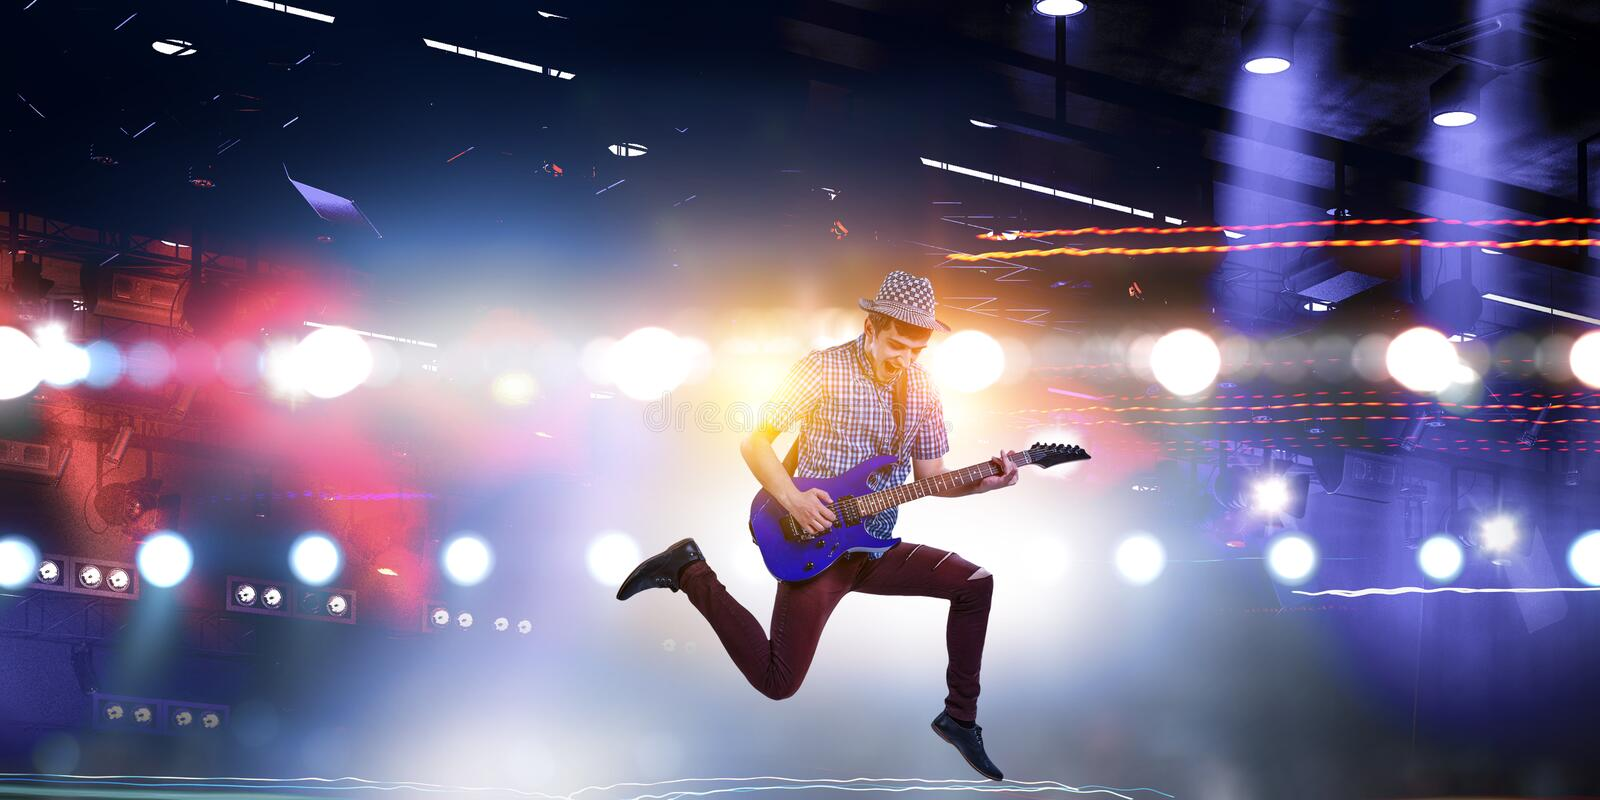 Guitar player jumping with guitar while playing royalty free stock images